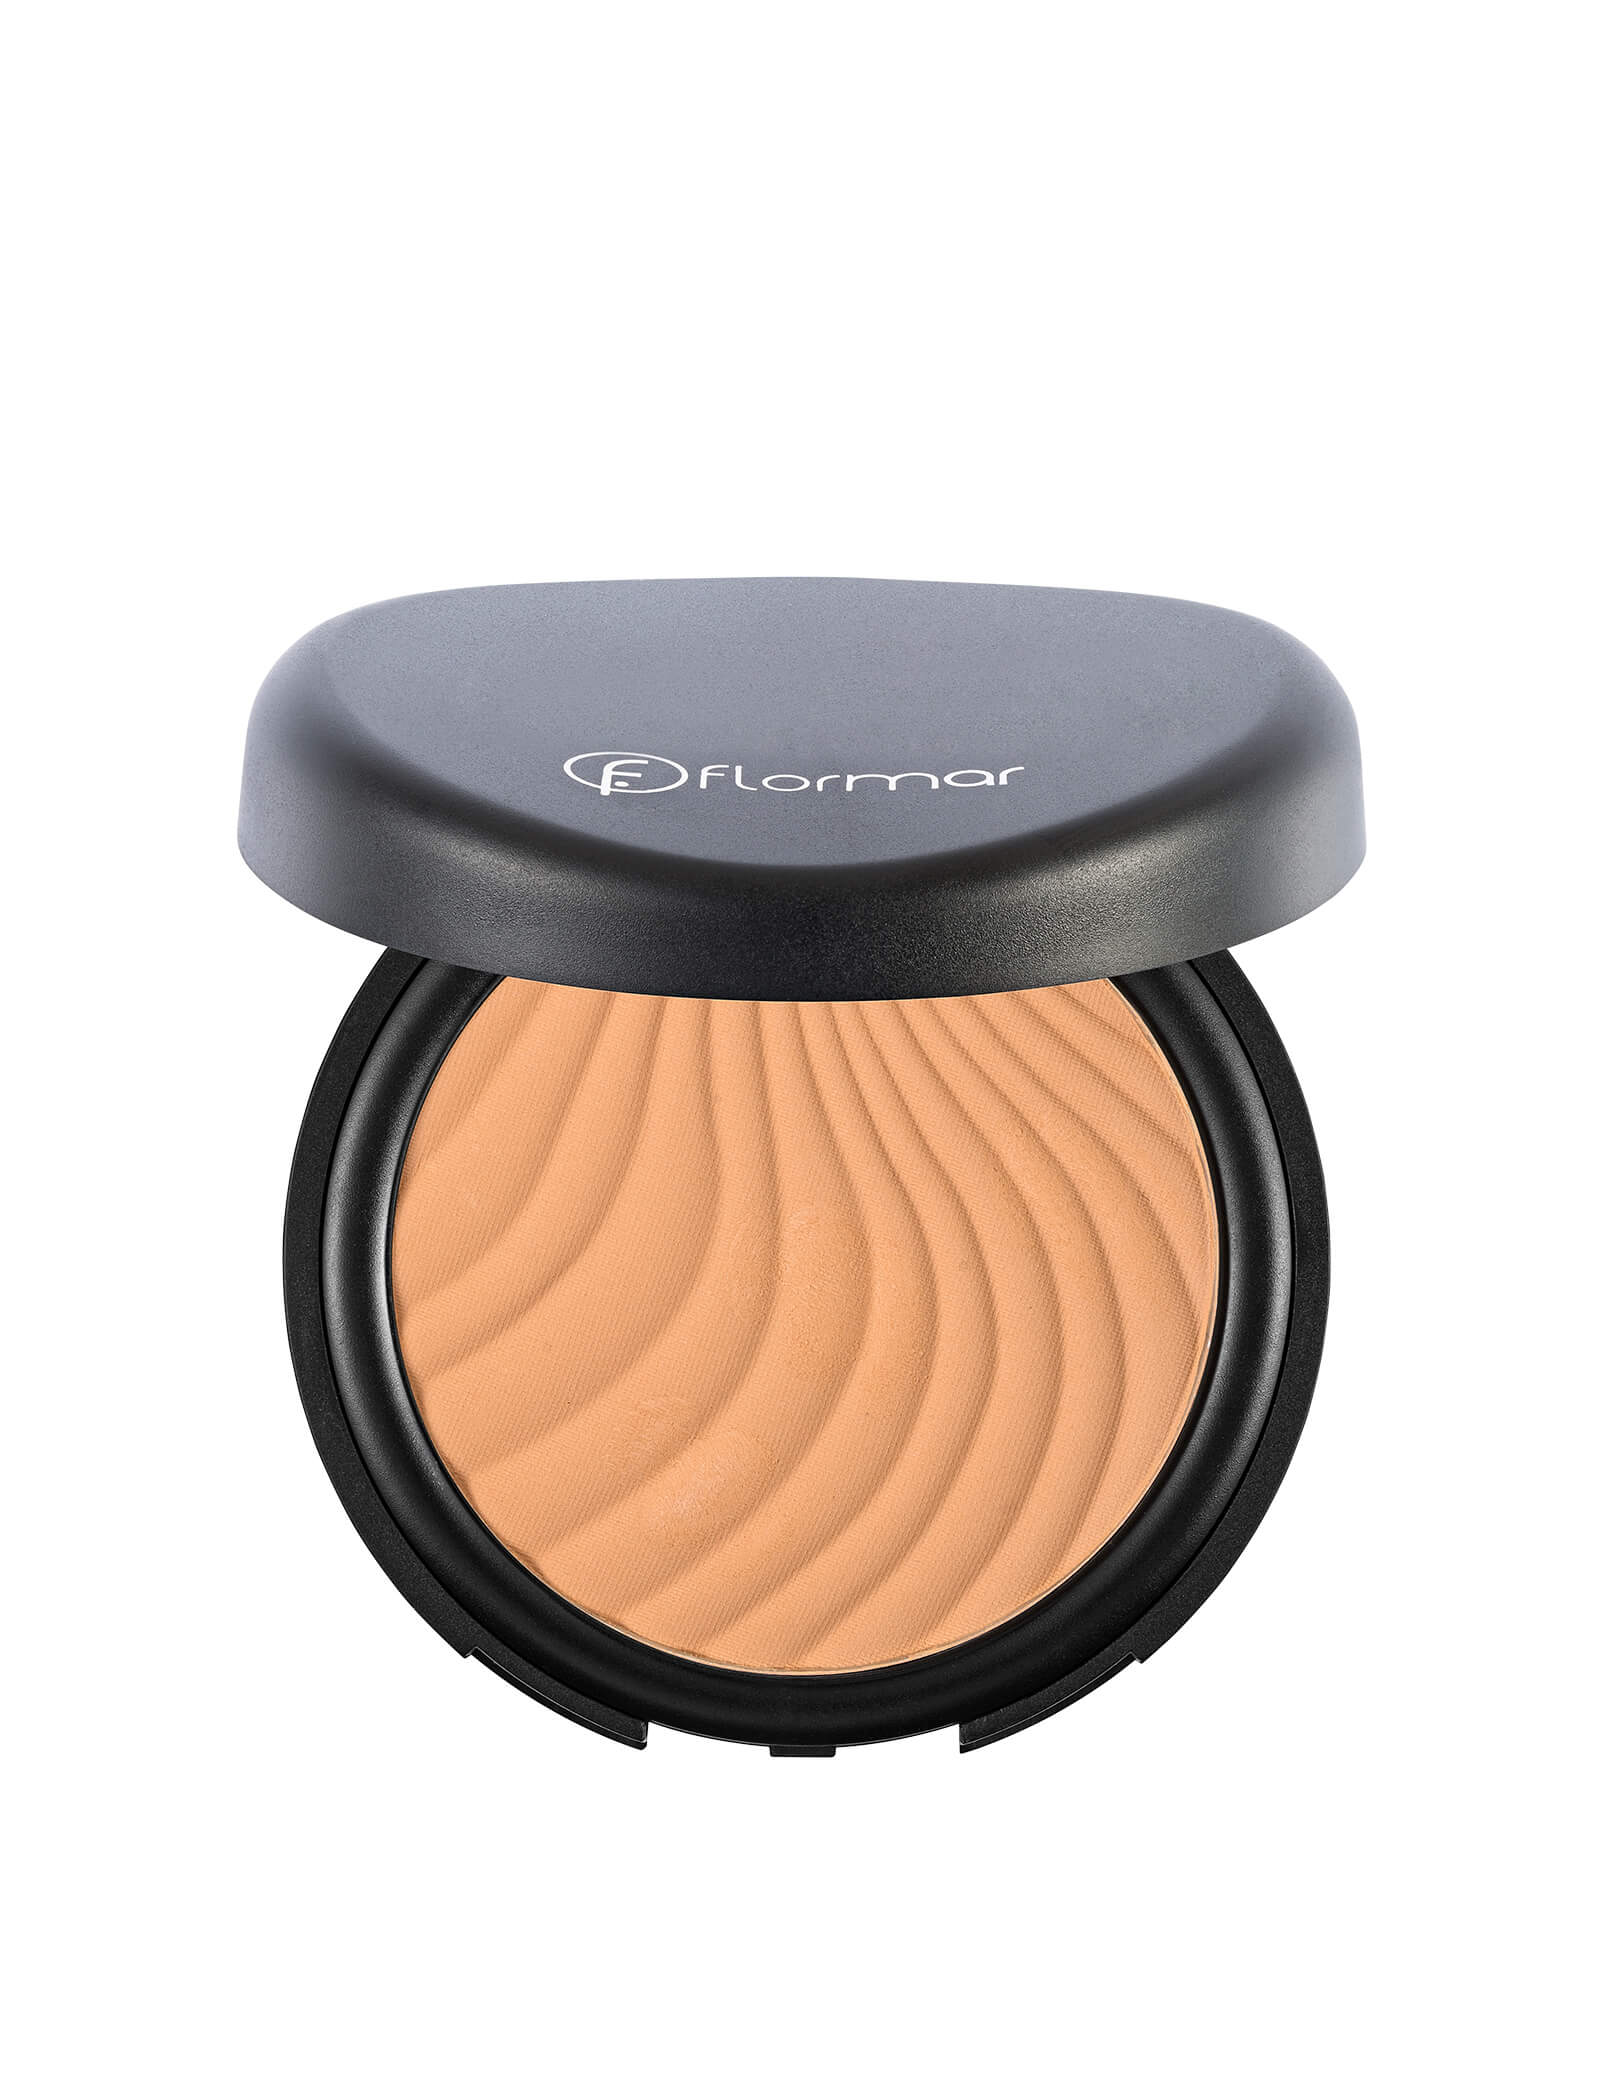 FLORMAR |wet& dry  COMPACT POWDER